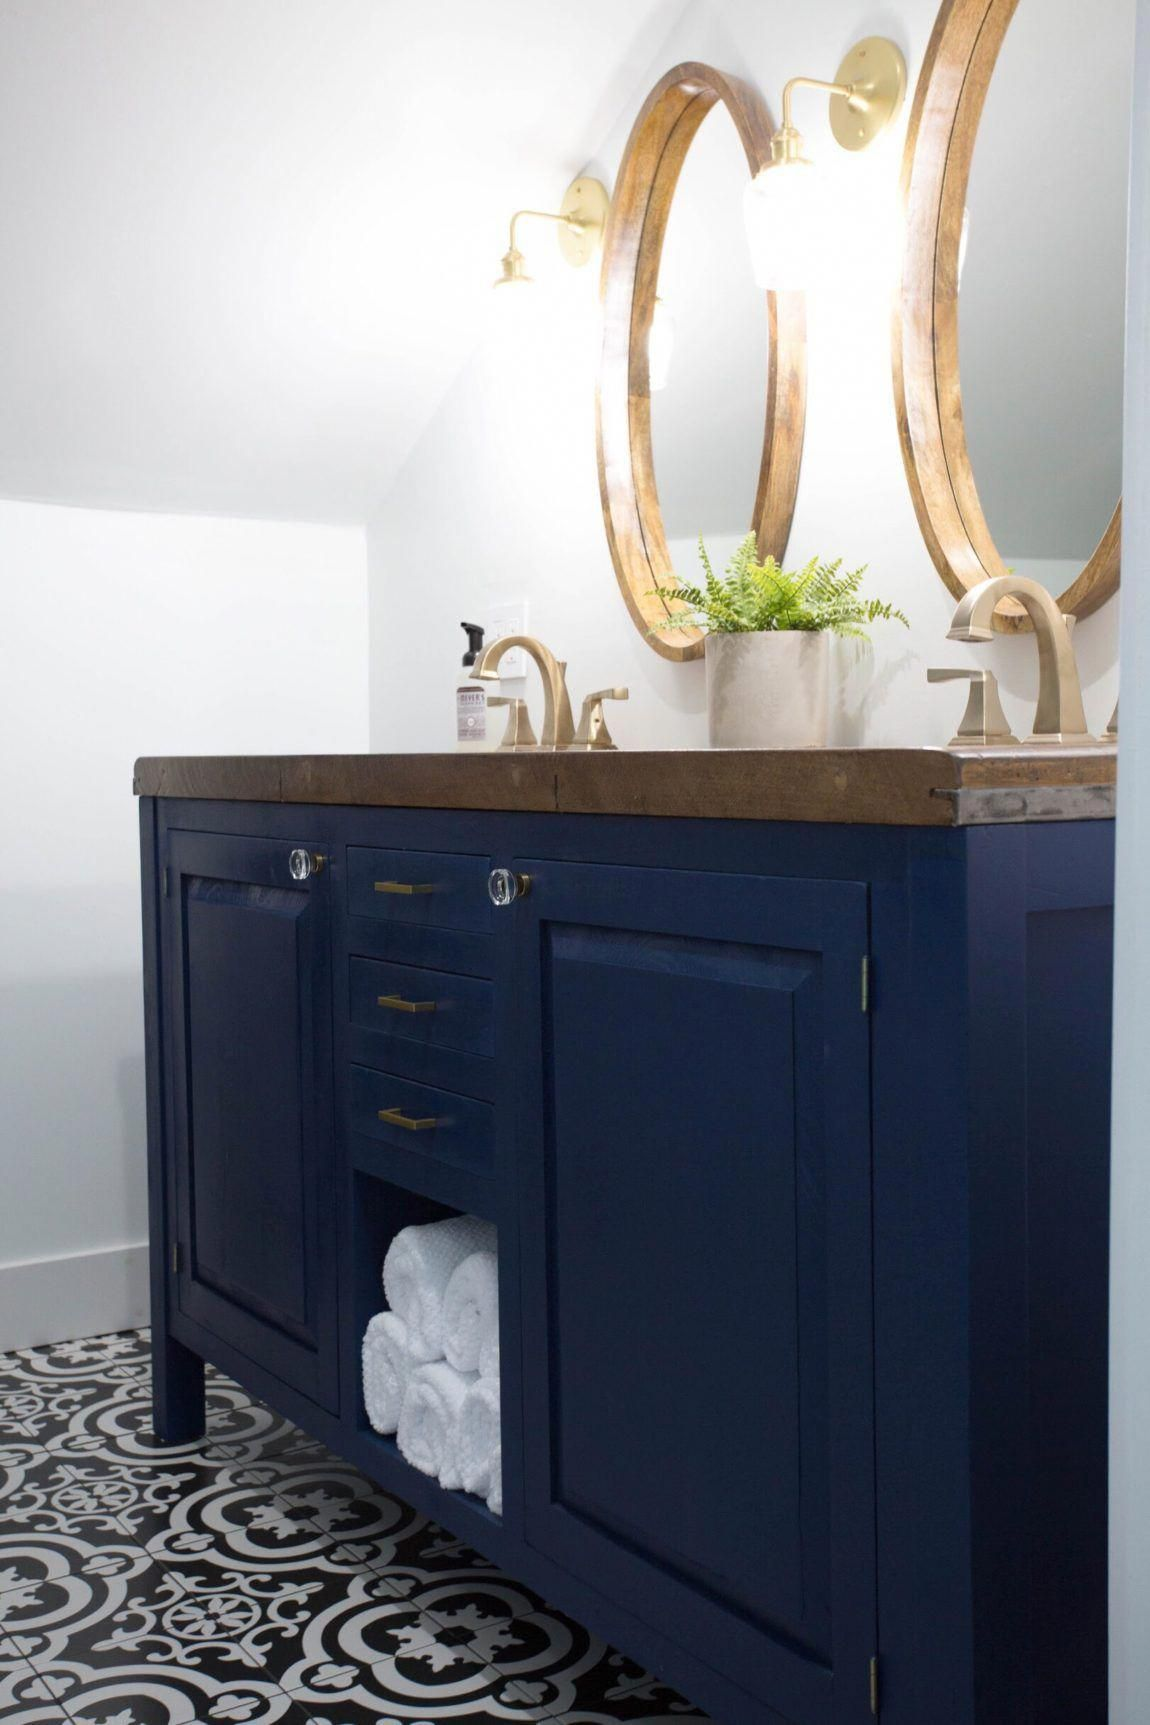 Modern Farmhouse Entryway Design Ideas Clark Aldine Navy Blue Vanity Navy Blue Bathroom Van Gold Bathroom Fixtures Blue Bathroom Vanity Bathroom Fixtures